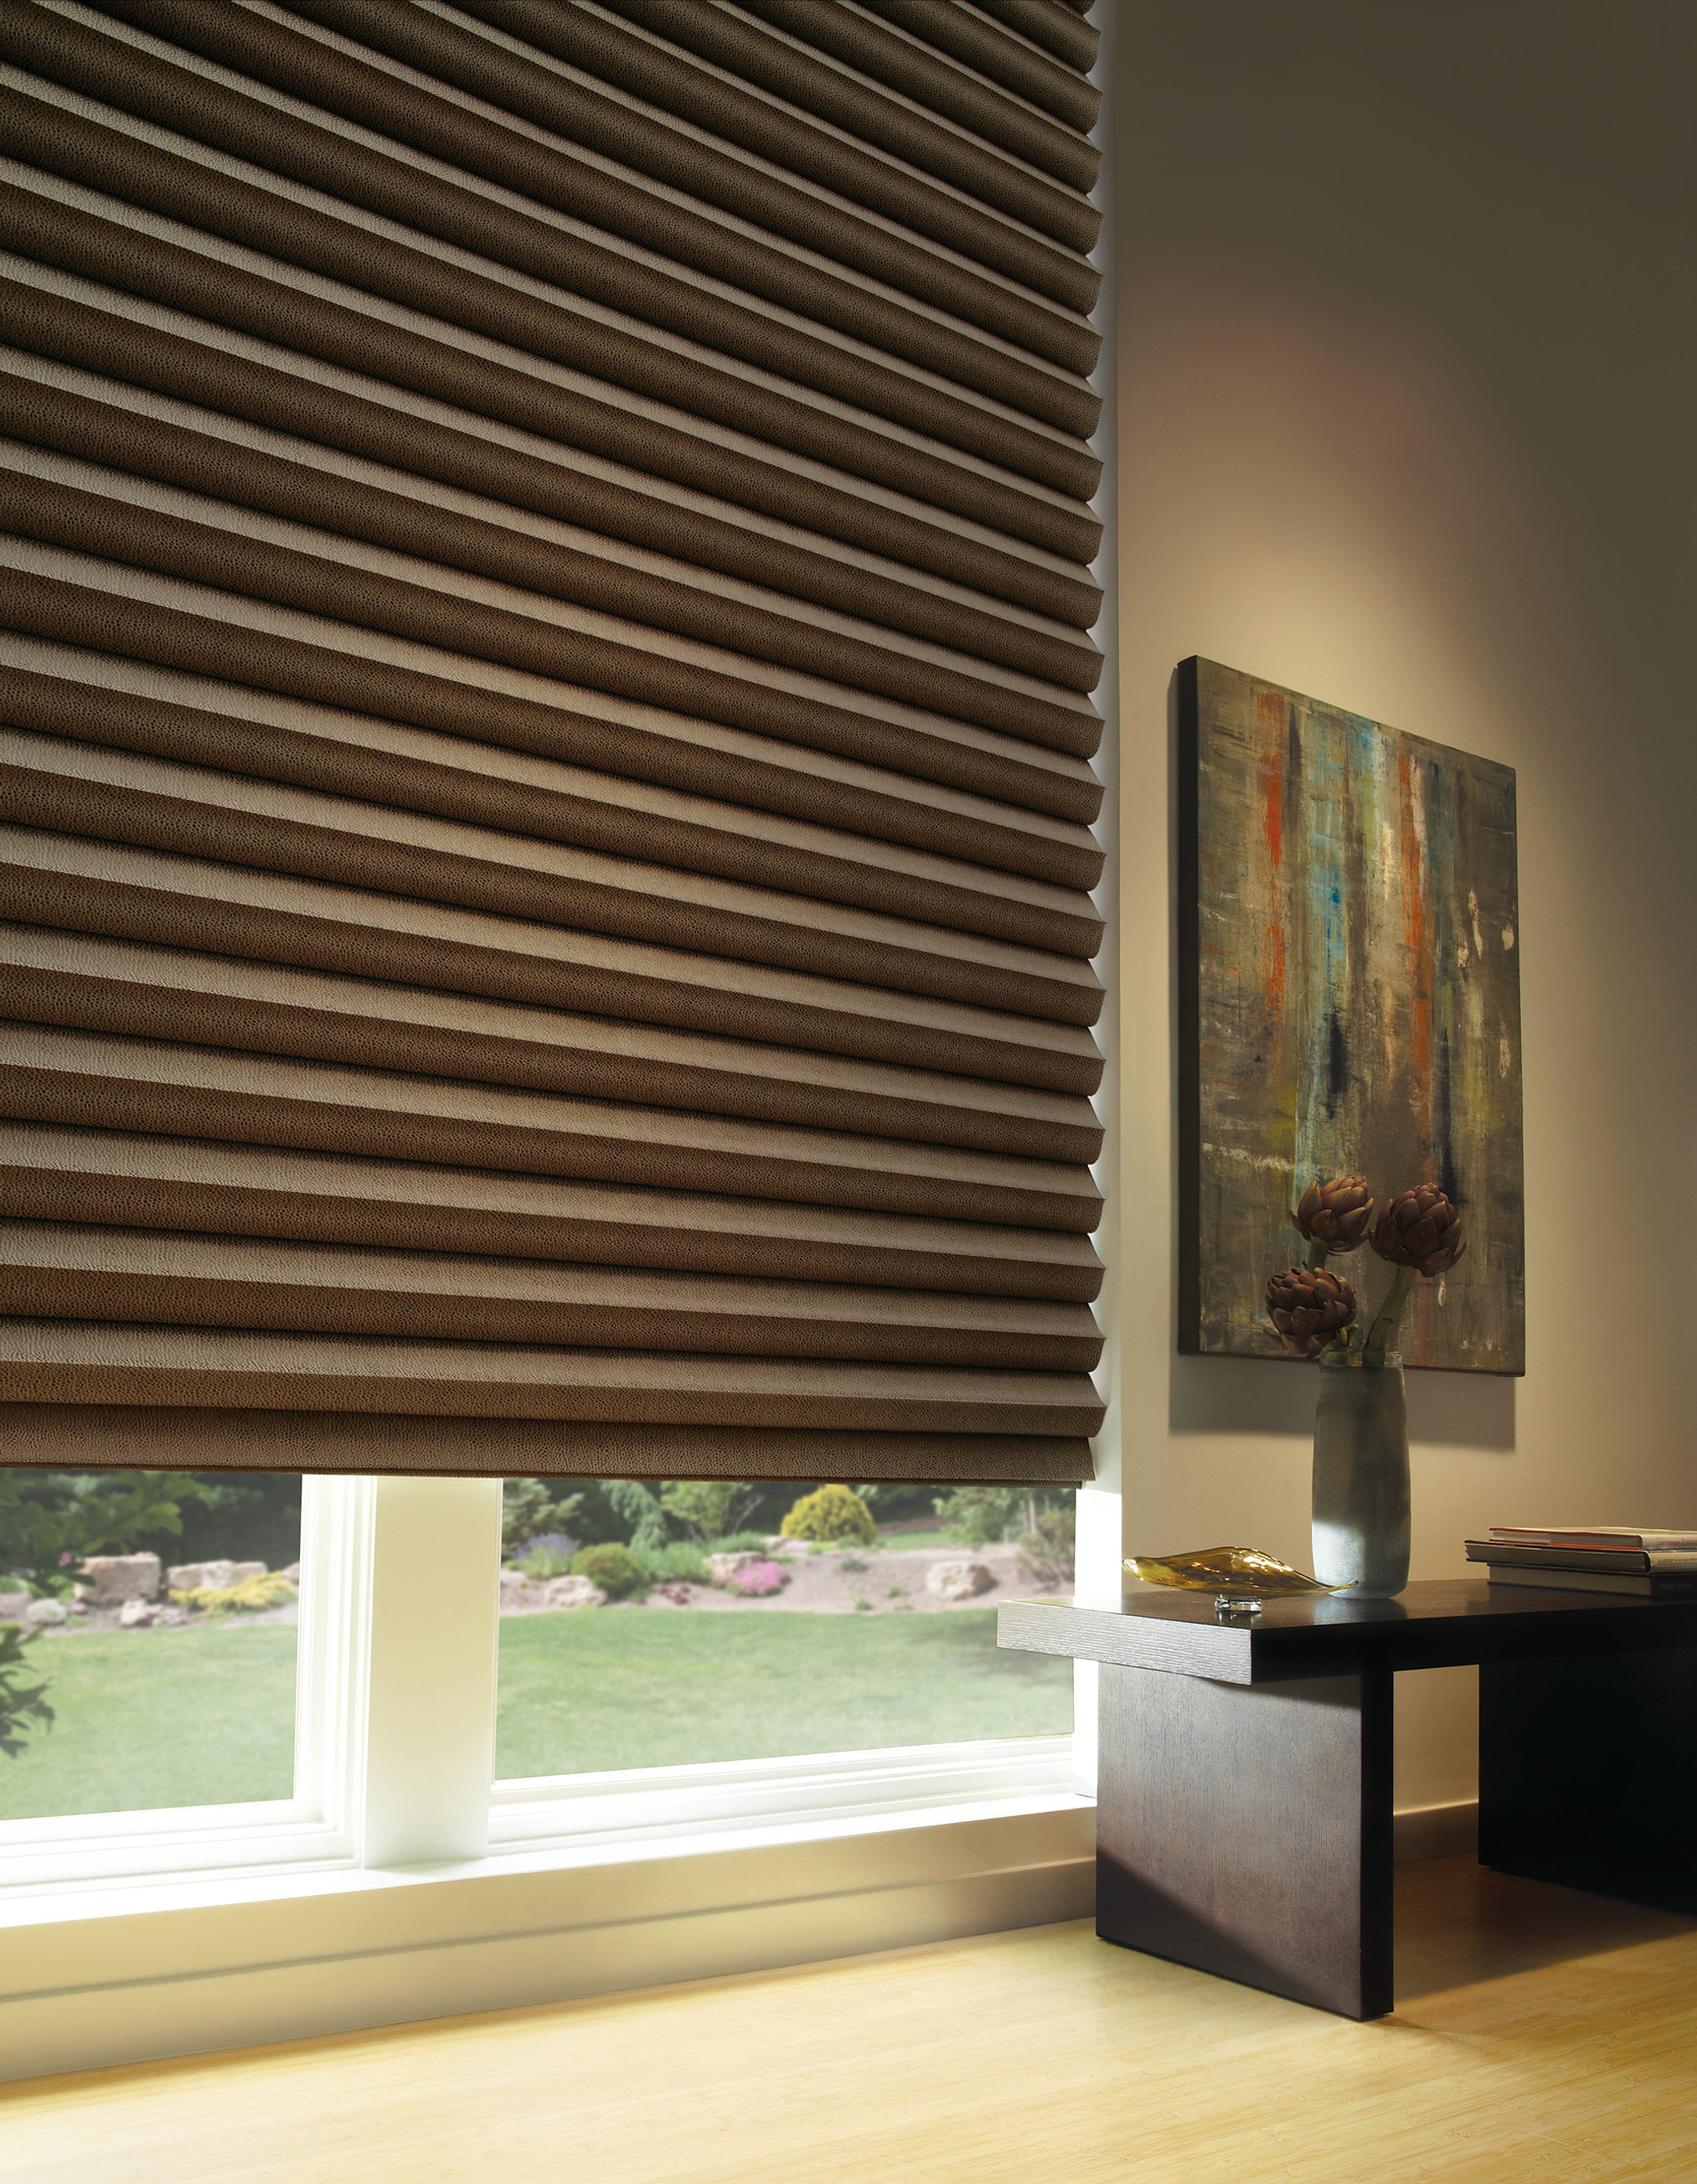 room motorized blinds lower home shades roller treatments motorization img pirouette custom of gallery family window